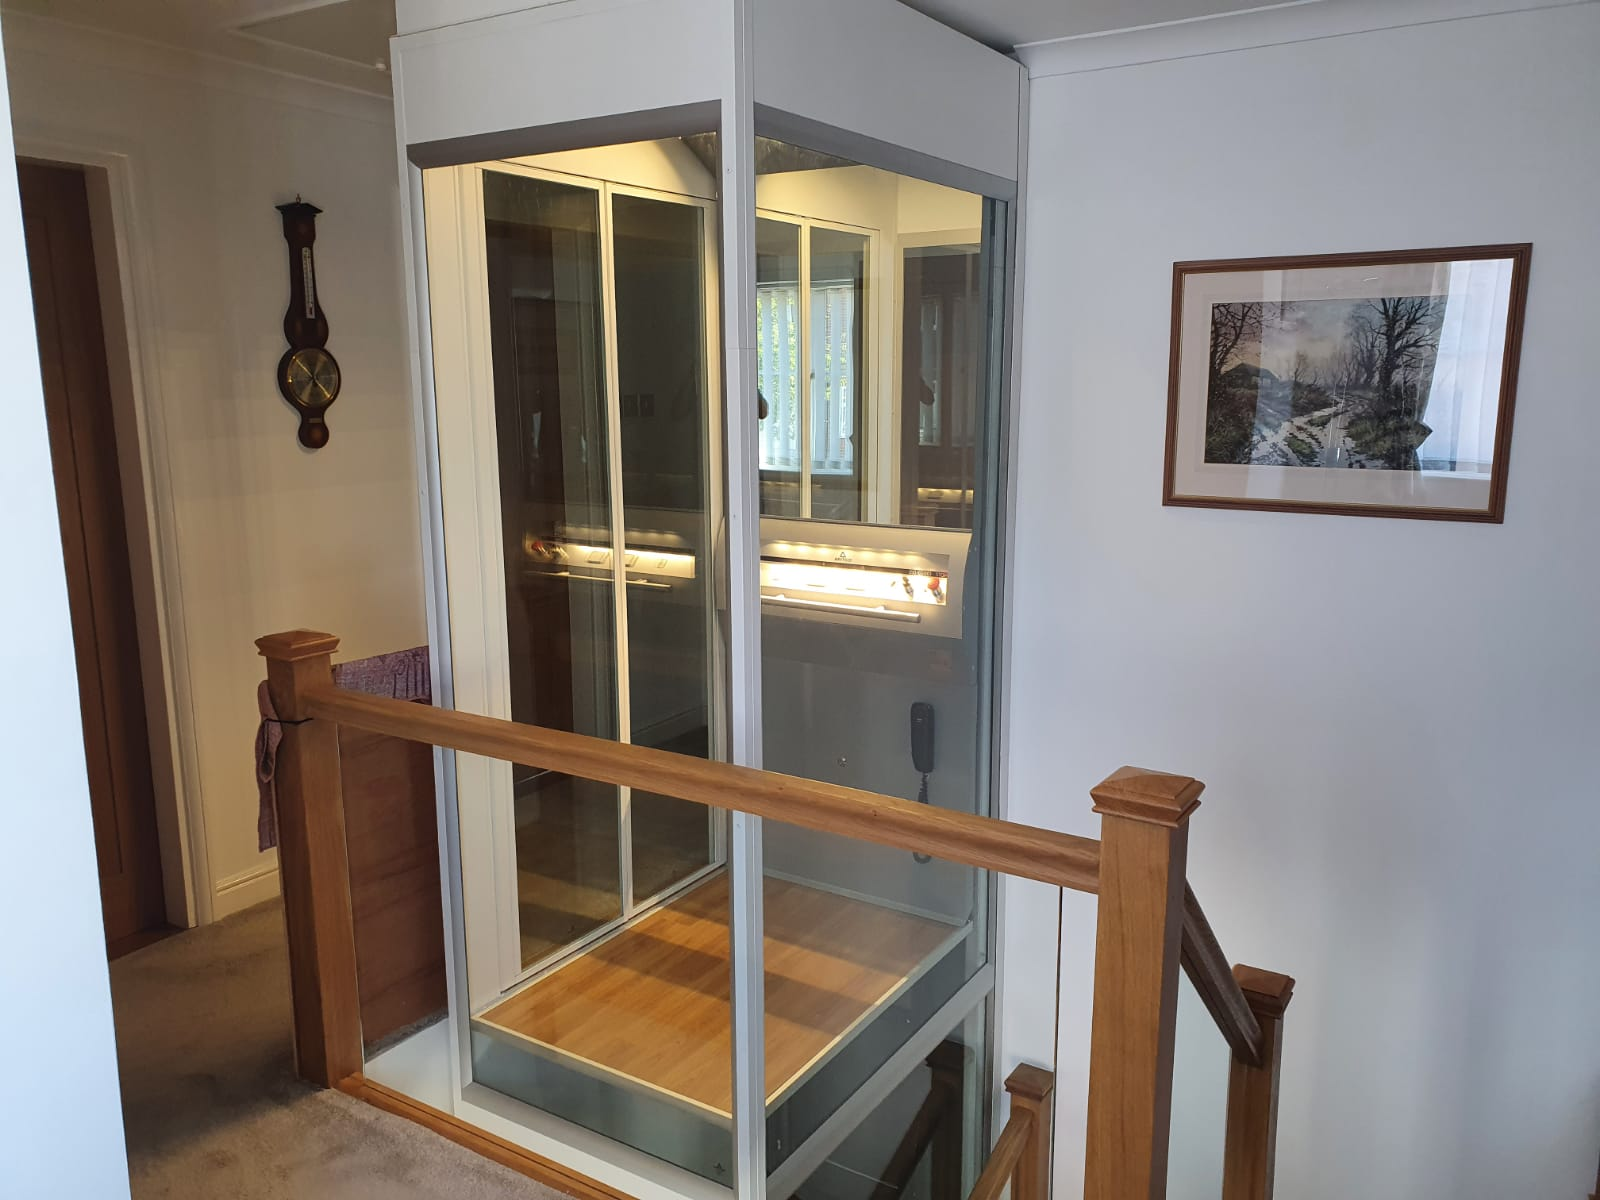 Qube Home Lift 2 - Qube home lift was the ideal solution!